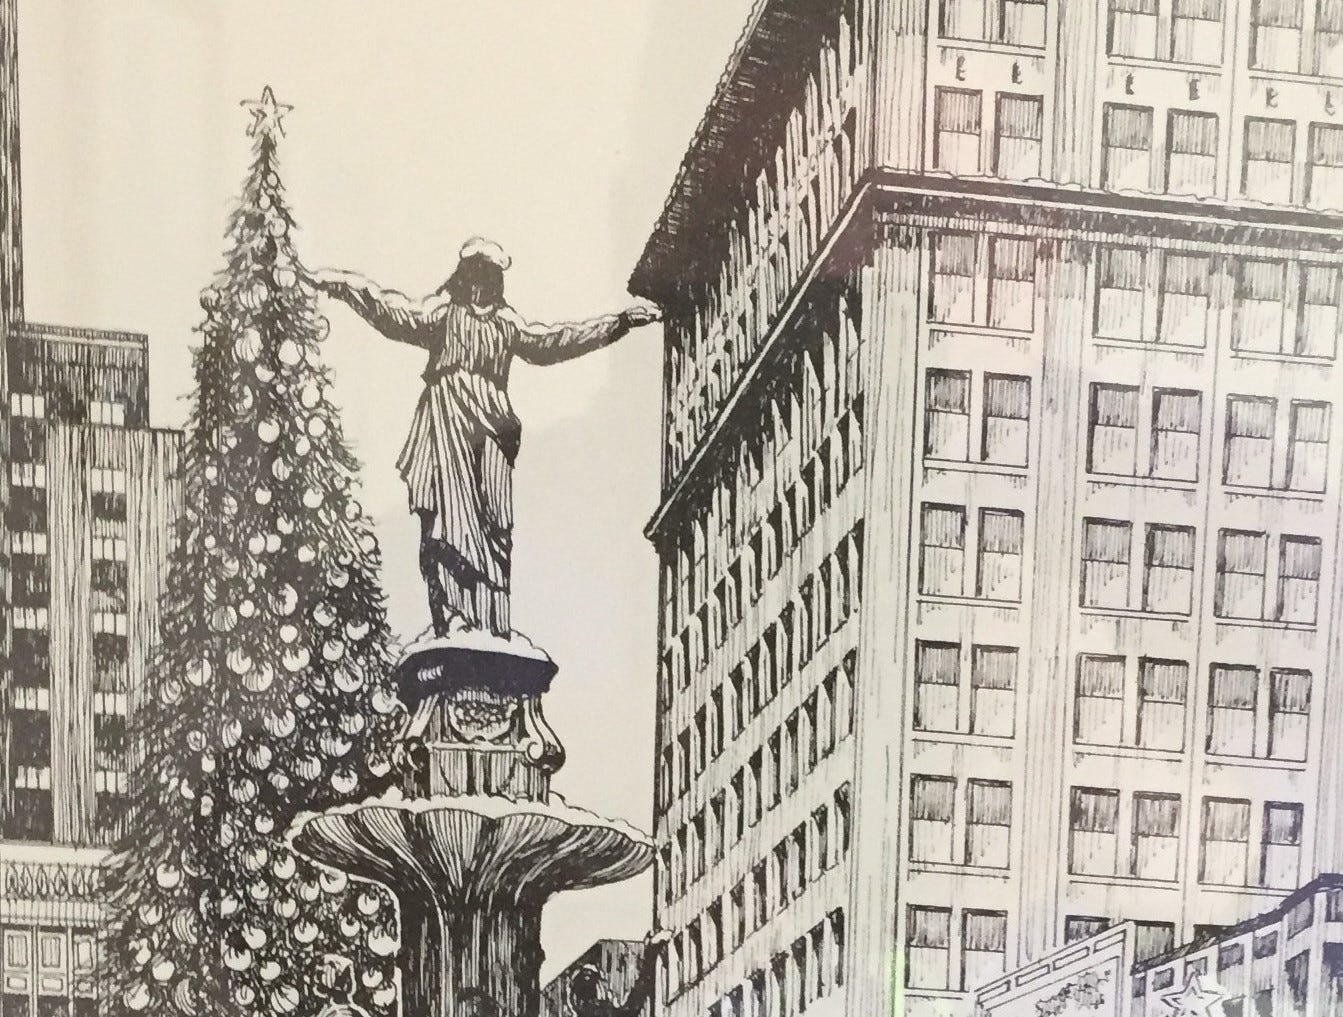 This is Thom Van Benschoten's print of Fountain Square at Christmas.